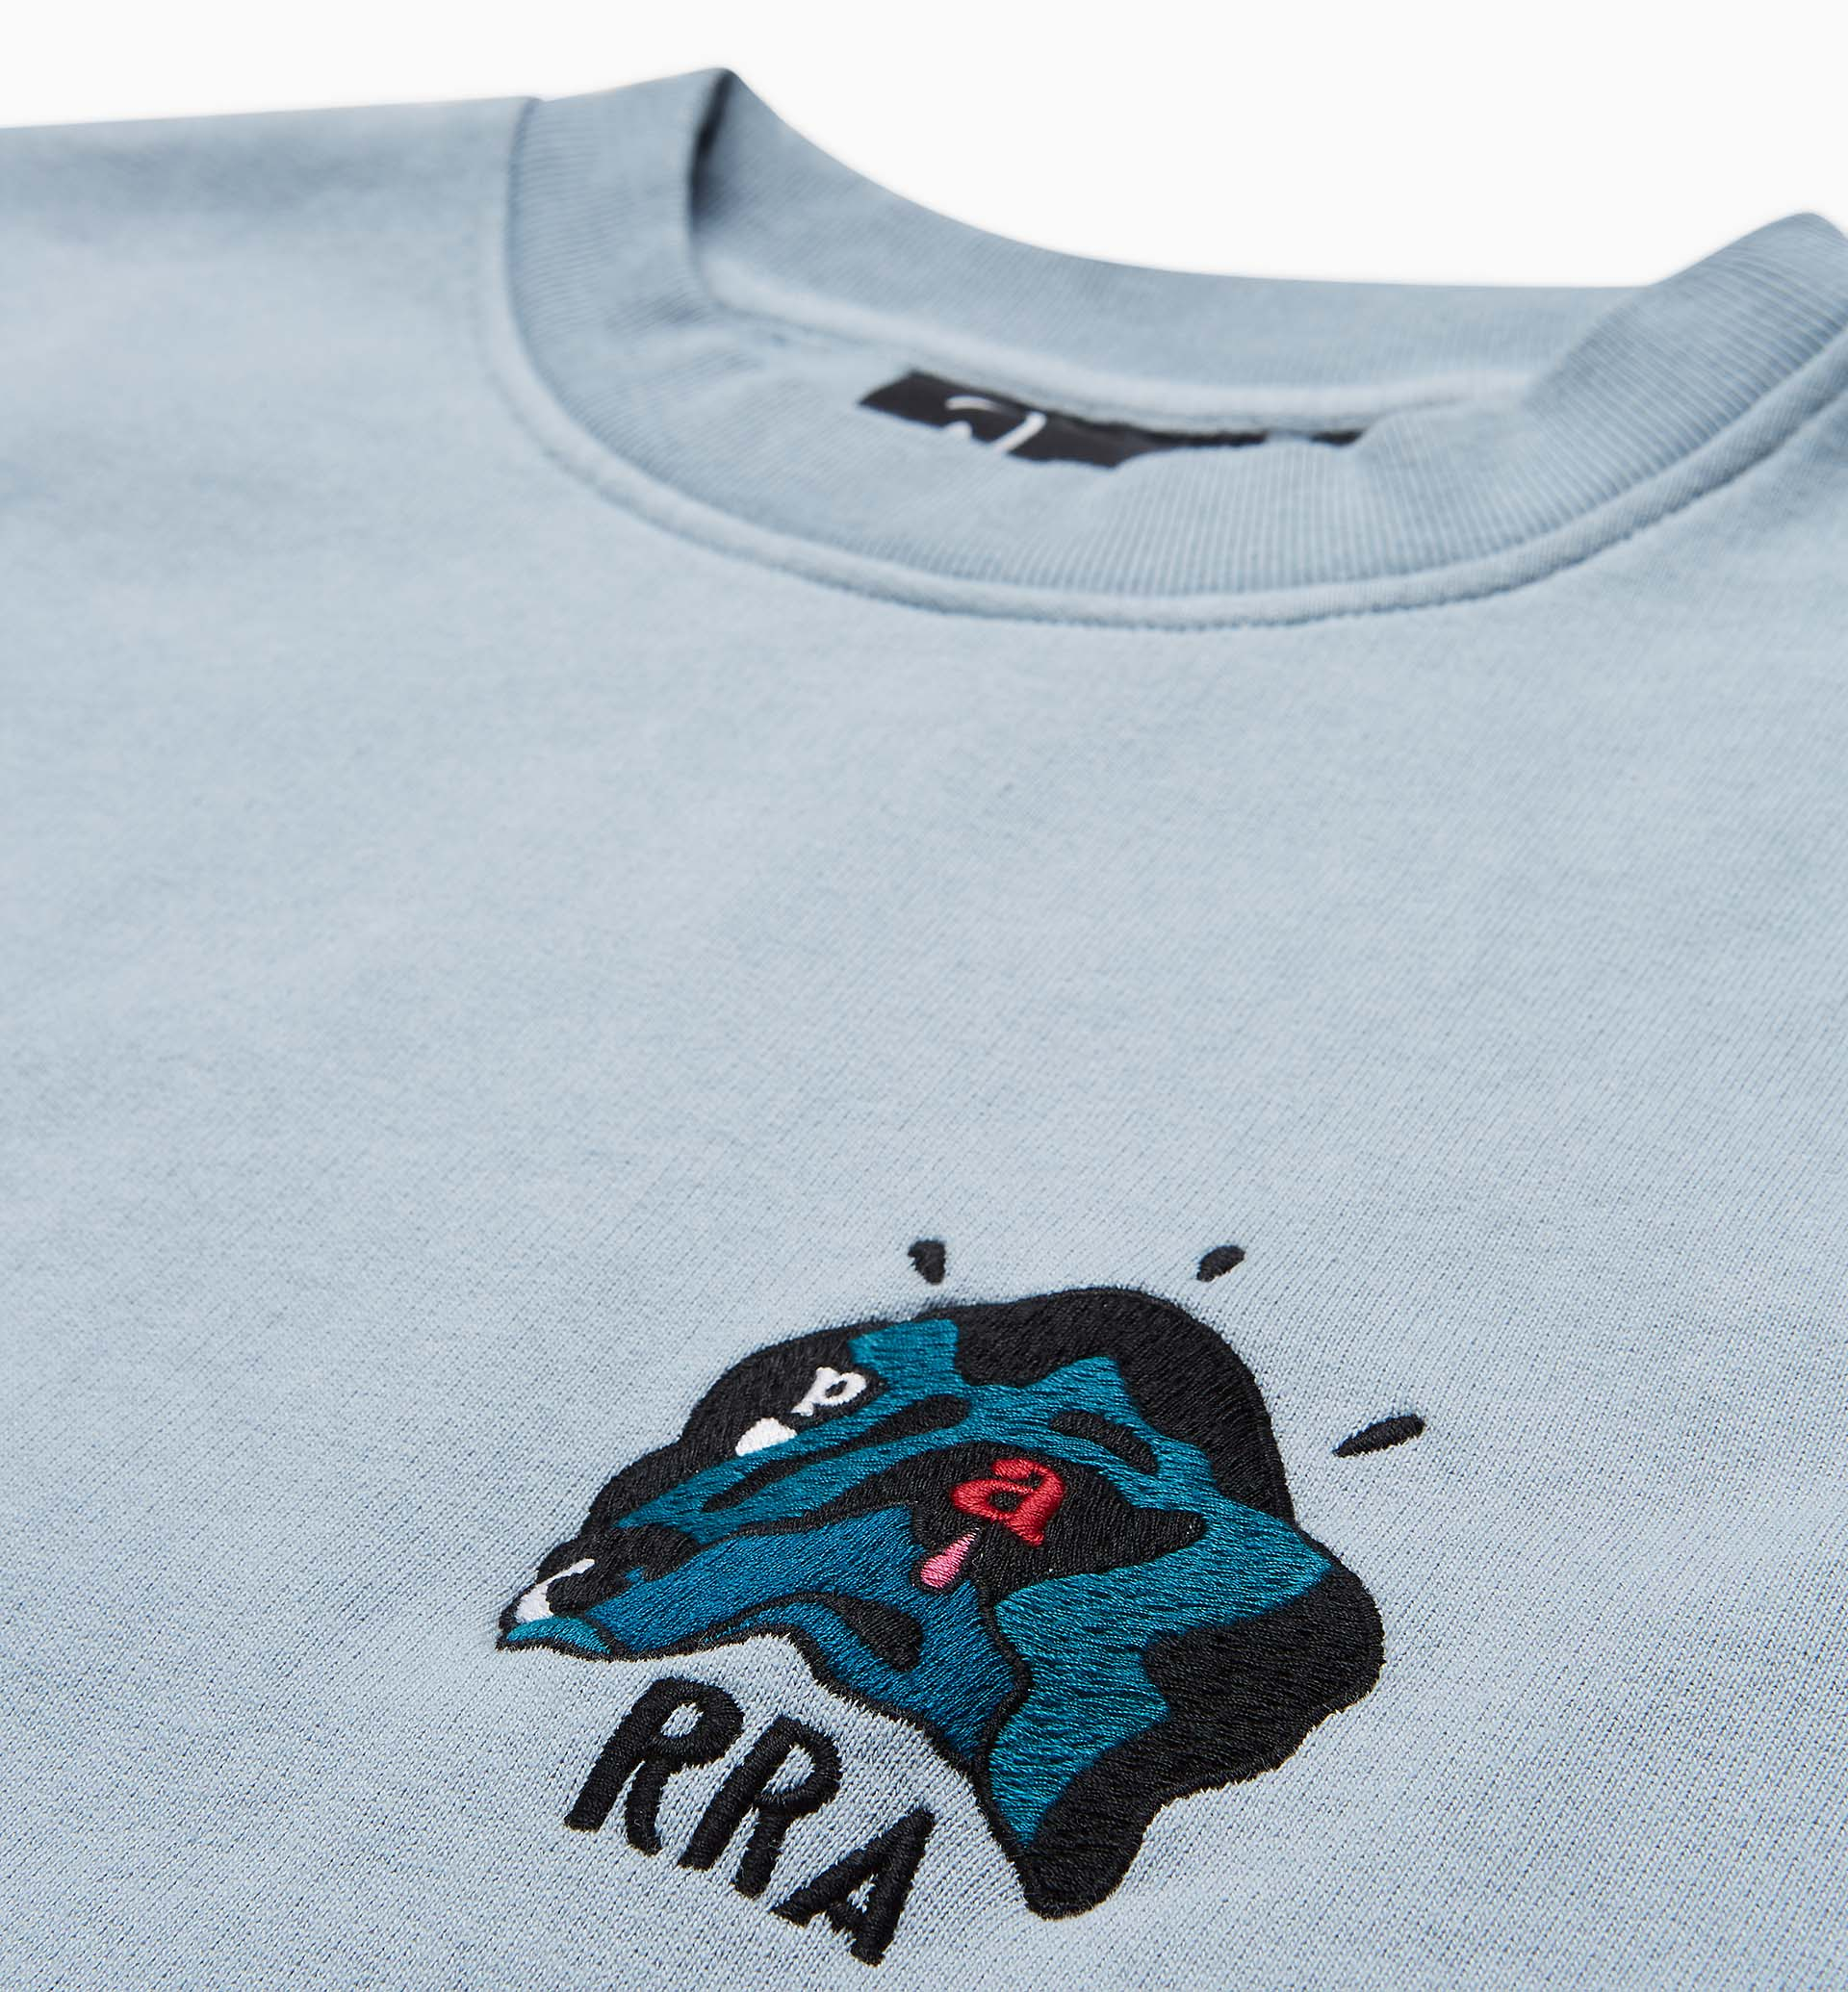 Parra - dogfaced crew neck sweatshirt